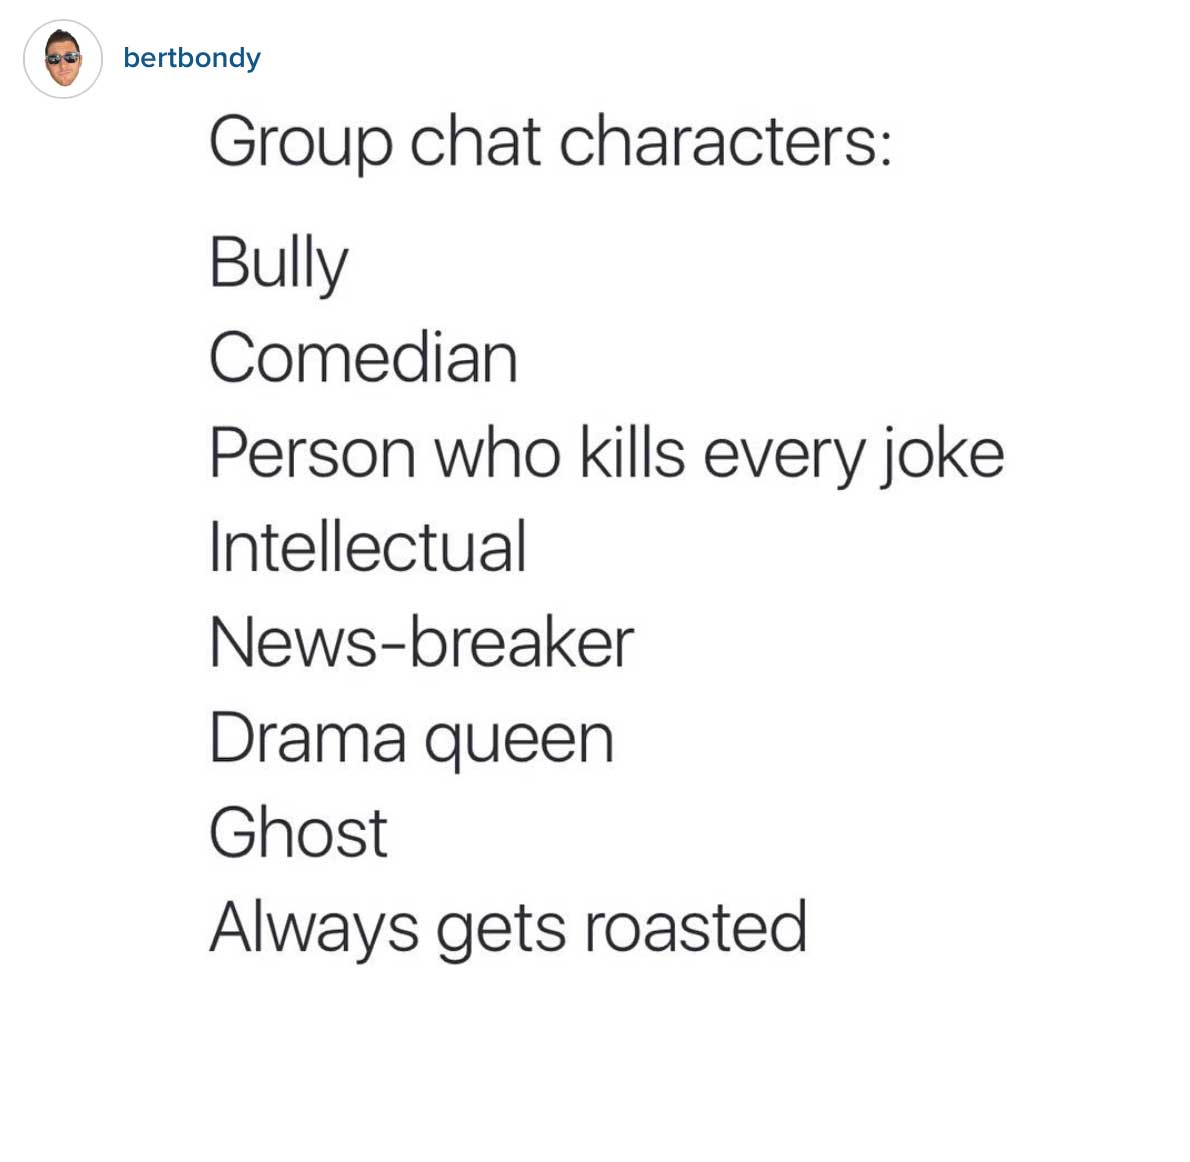 queens chat line numbers